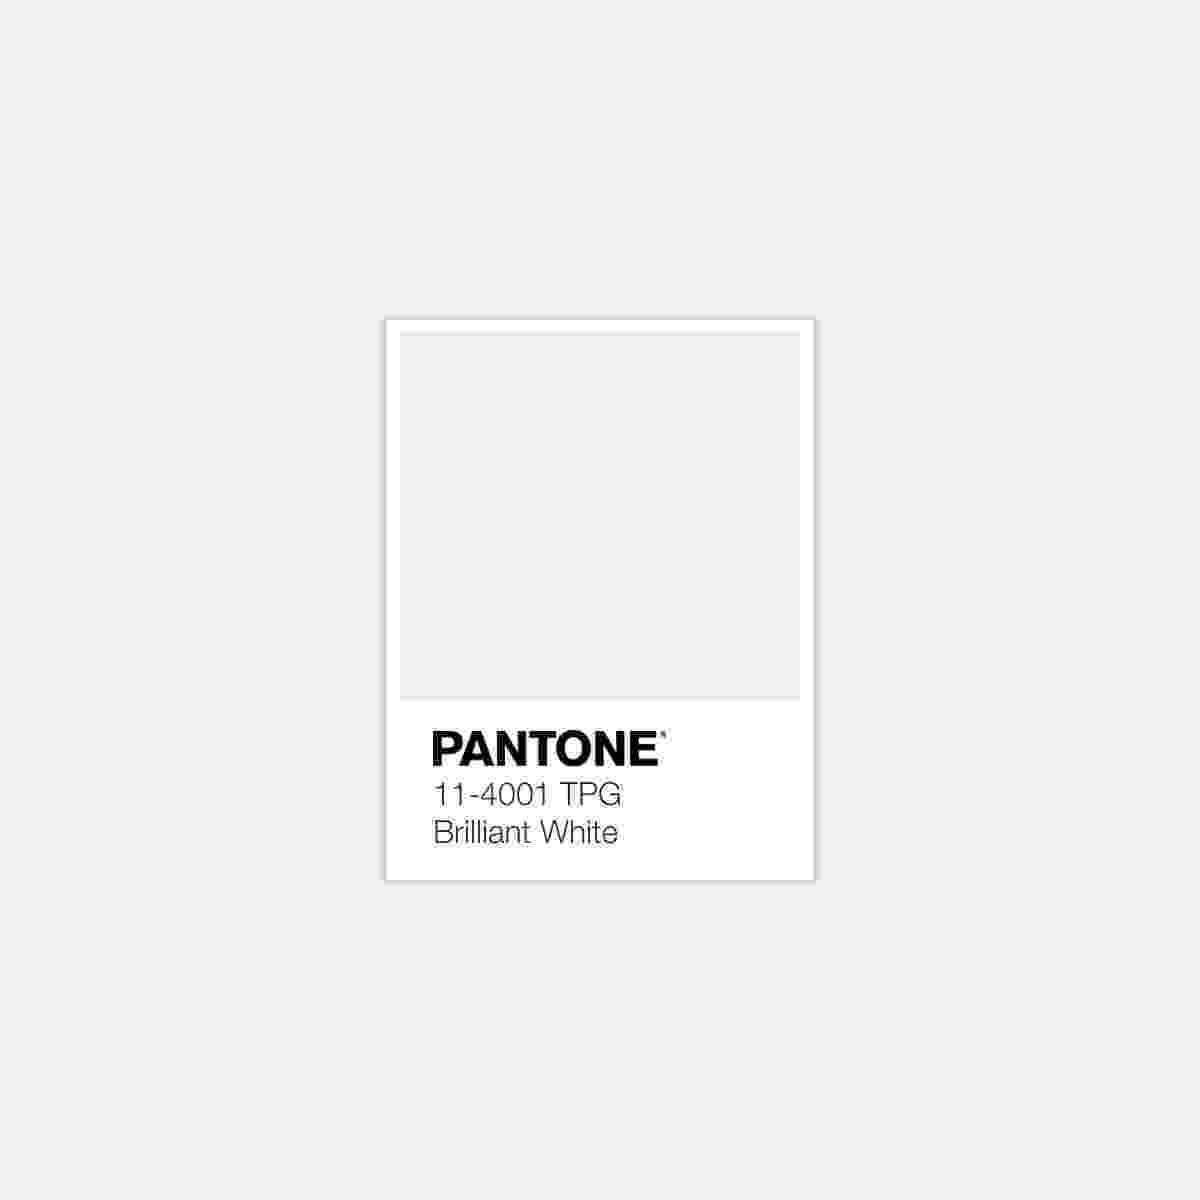 color palette ideas for home city street men7105 3 in 2020 paint colors wall paint for color palette ideas home